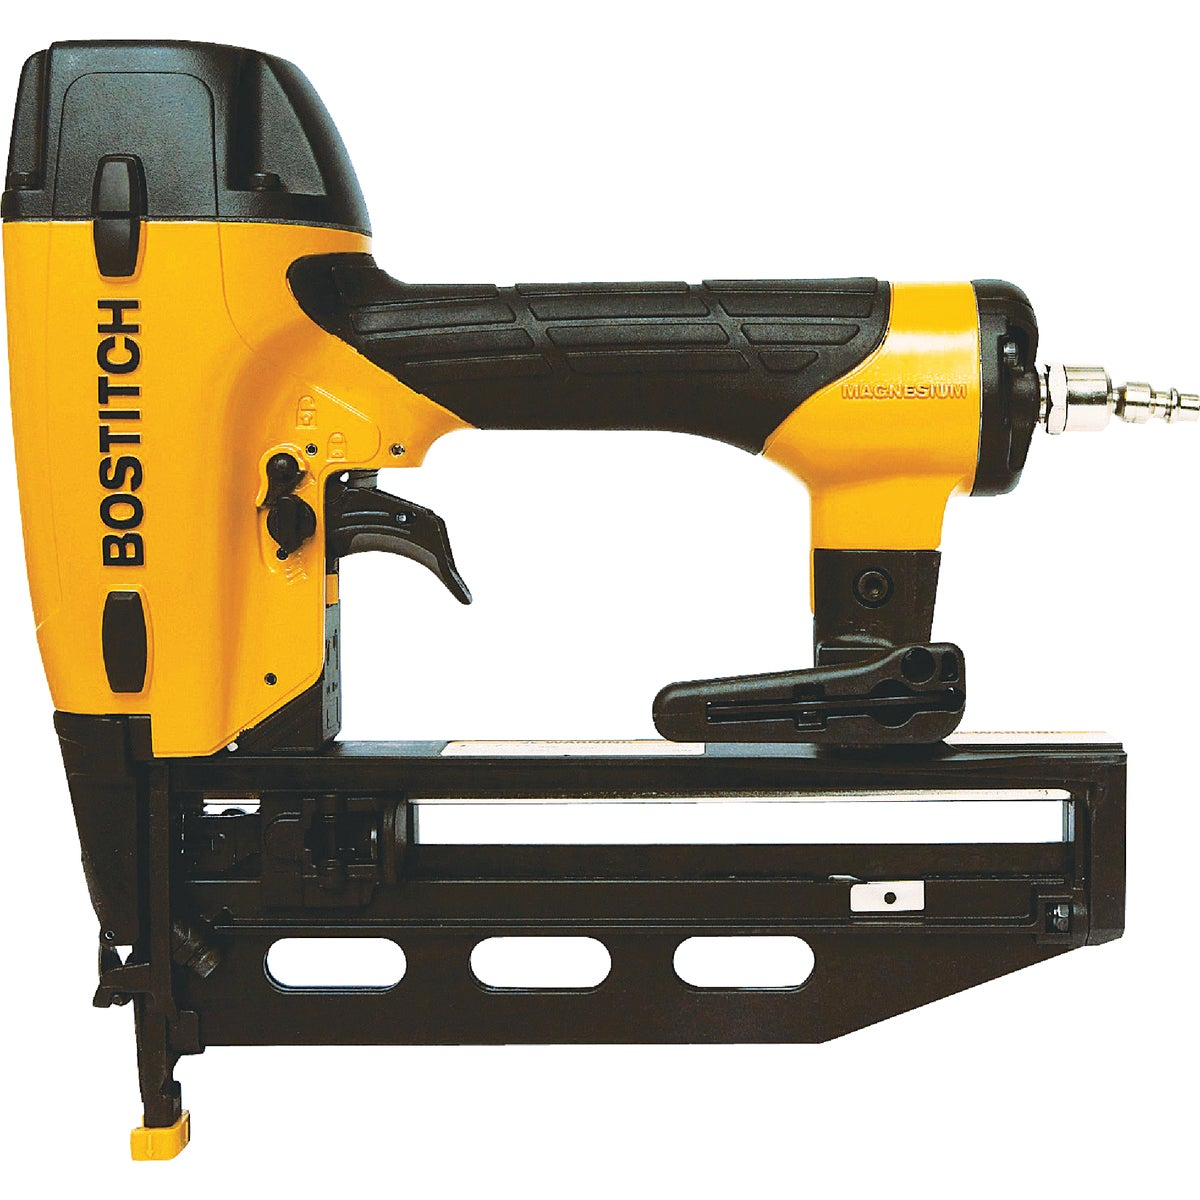 16GA FINISH NAILER KIT